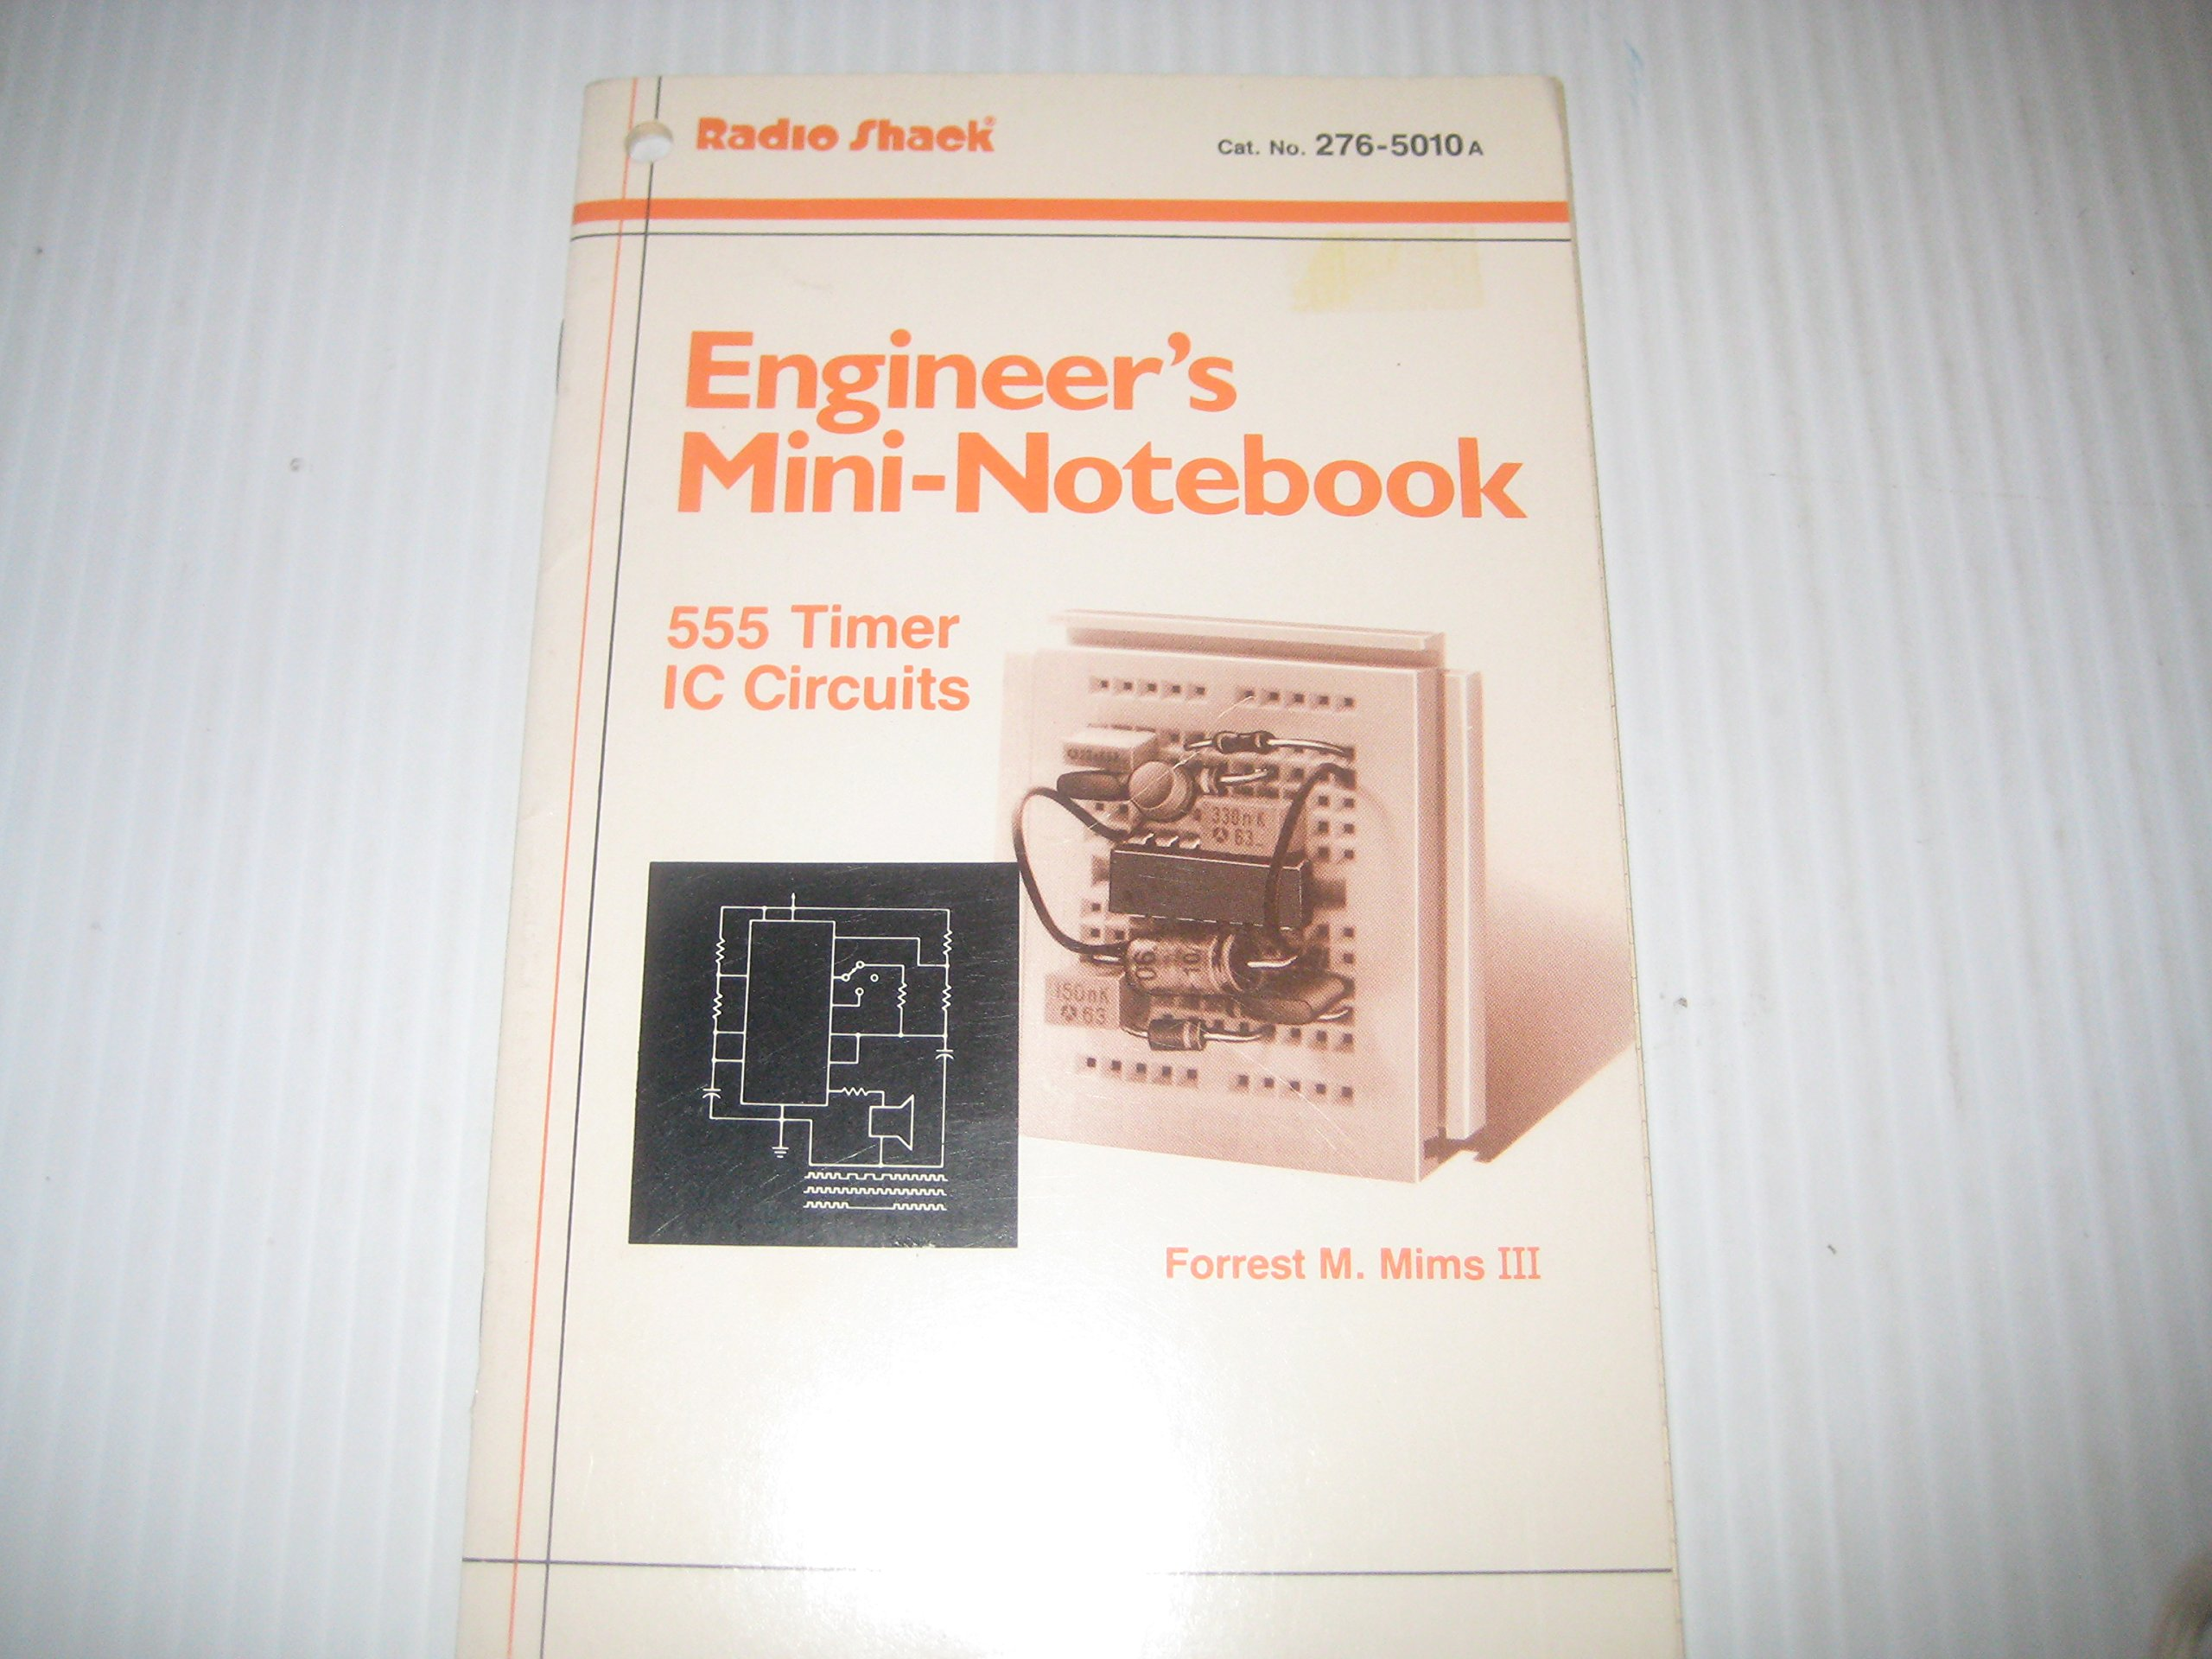 Engineers Mini Notebook 555 Timer Ic Circuits Cat No 276 5010 Forrest M Mims Books